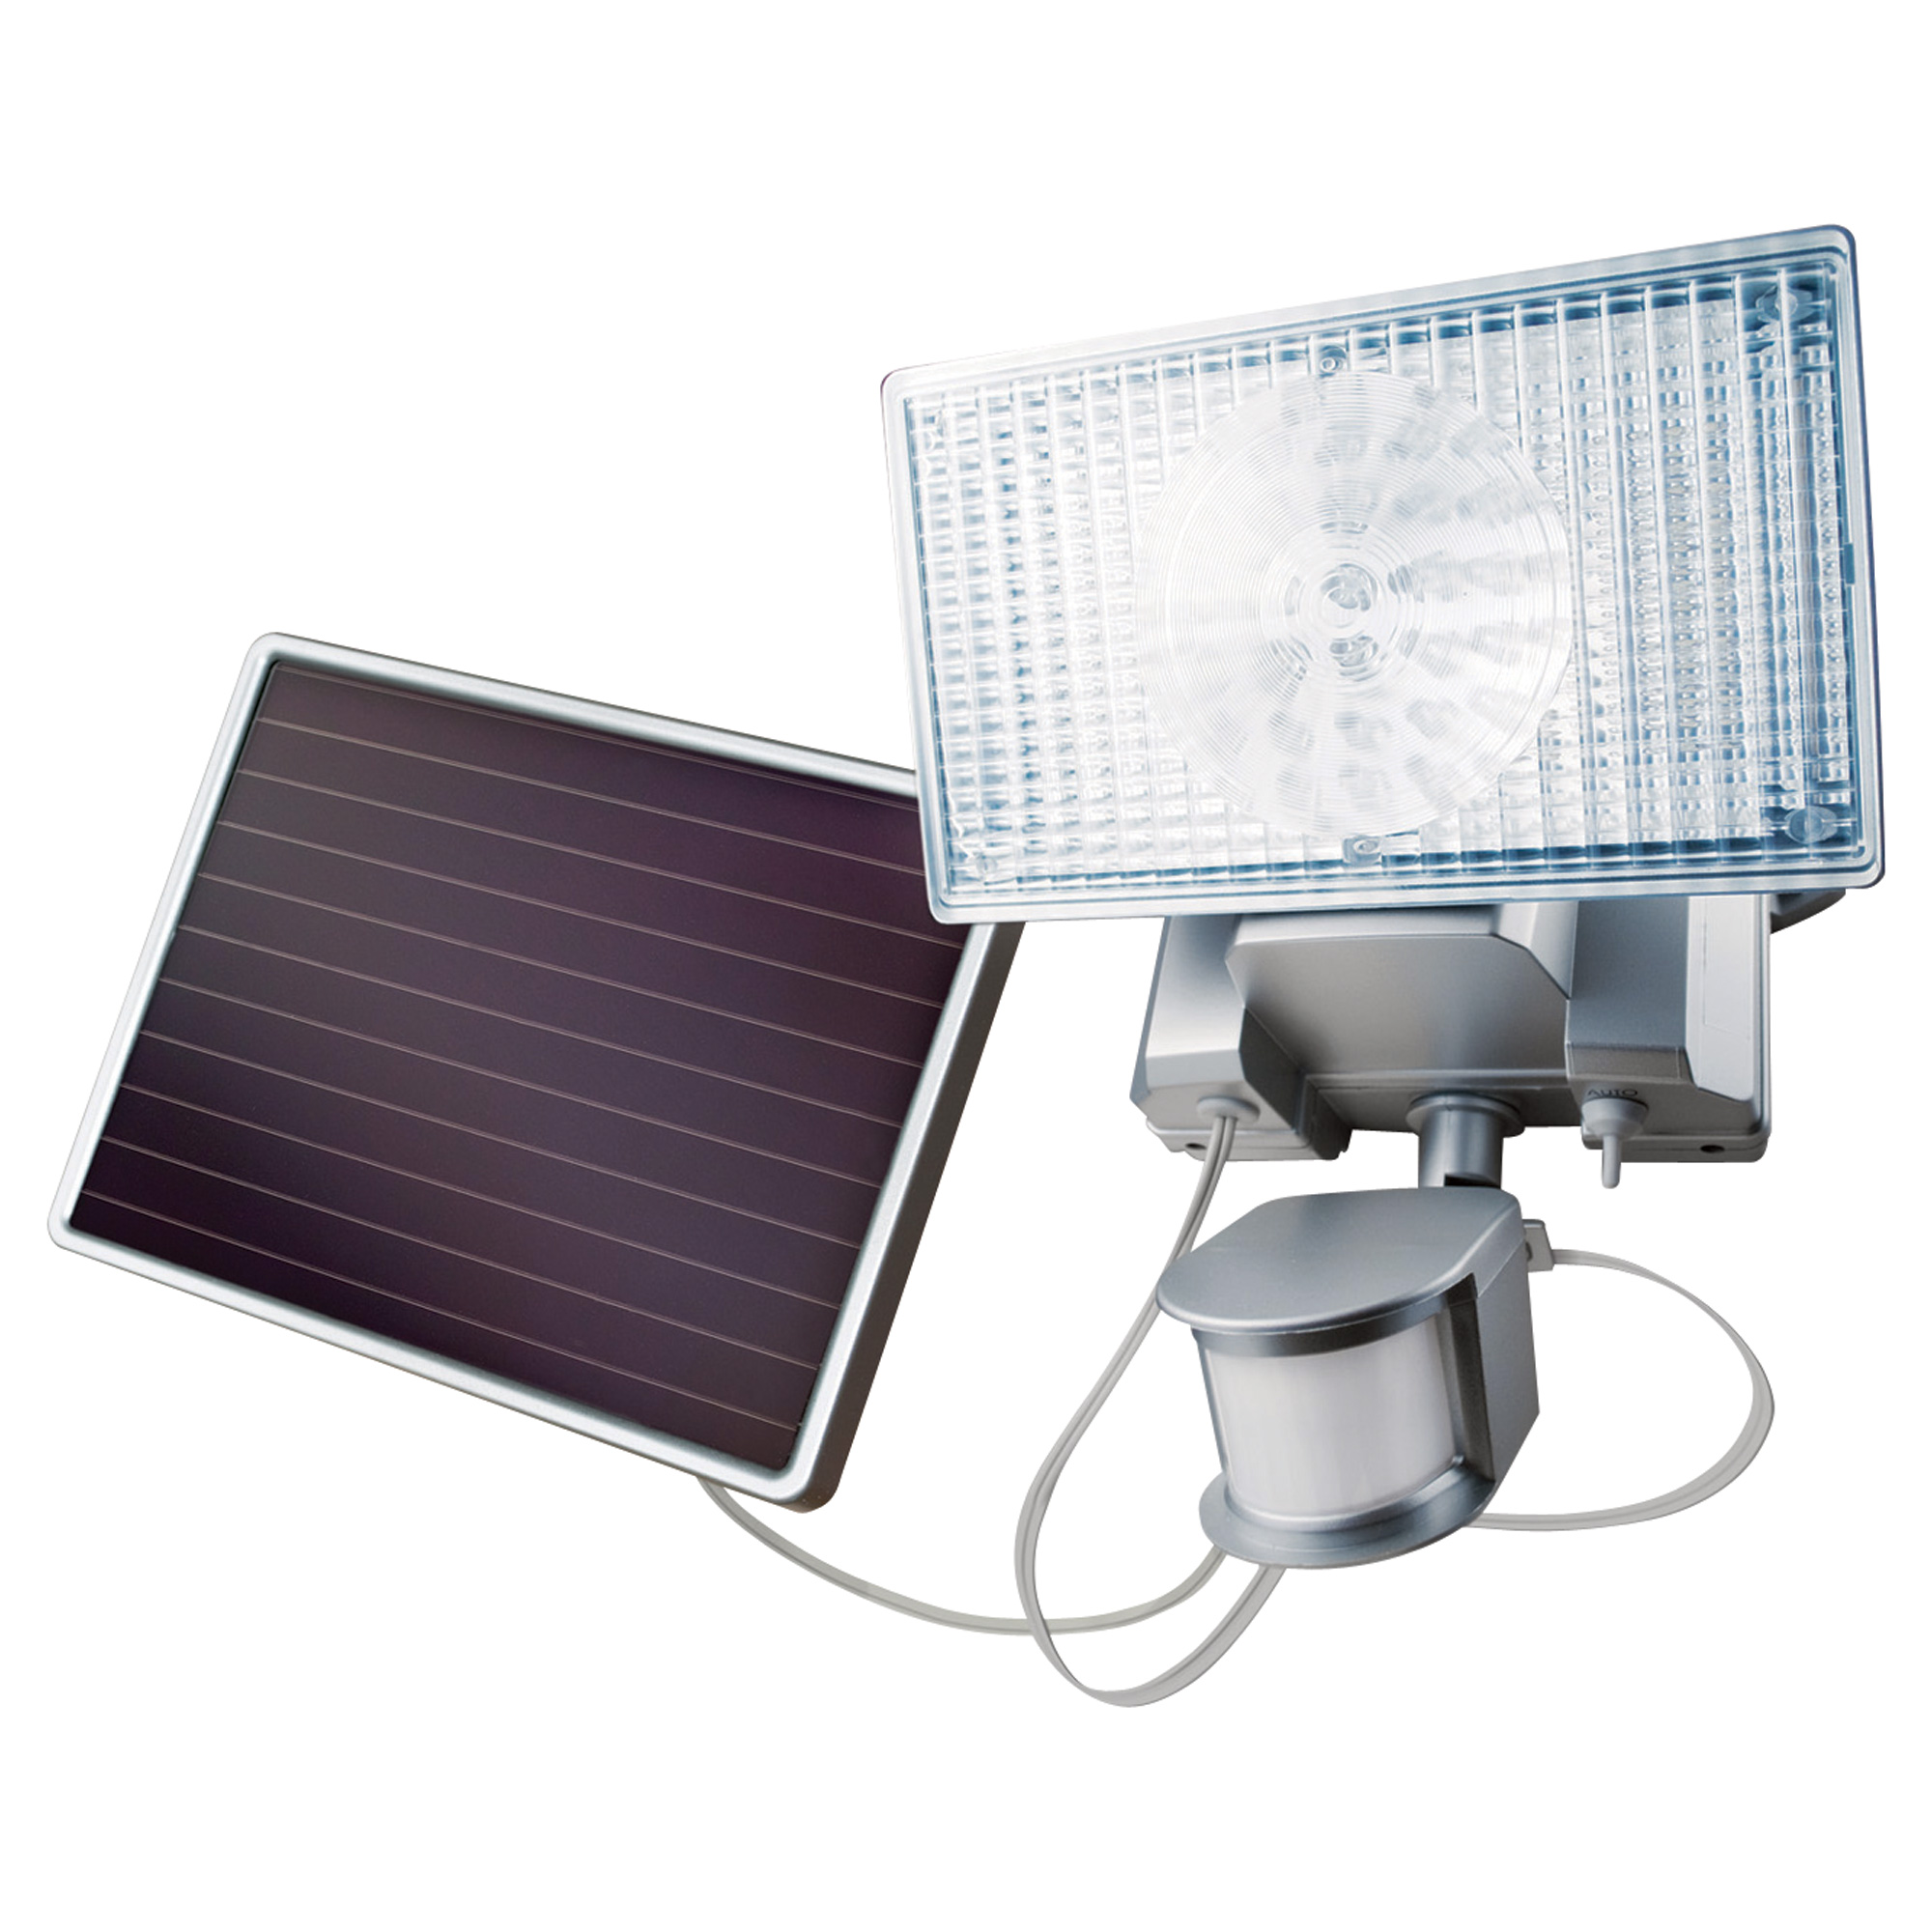 Best Solar Outdoor Patio Lights: 10 Things To Consider Before Choosing Led Outdoor Solar